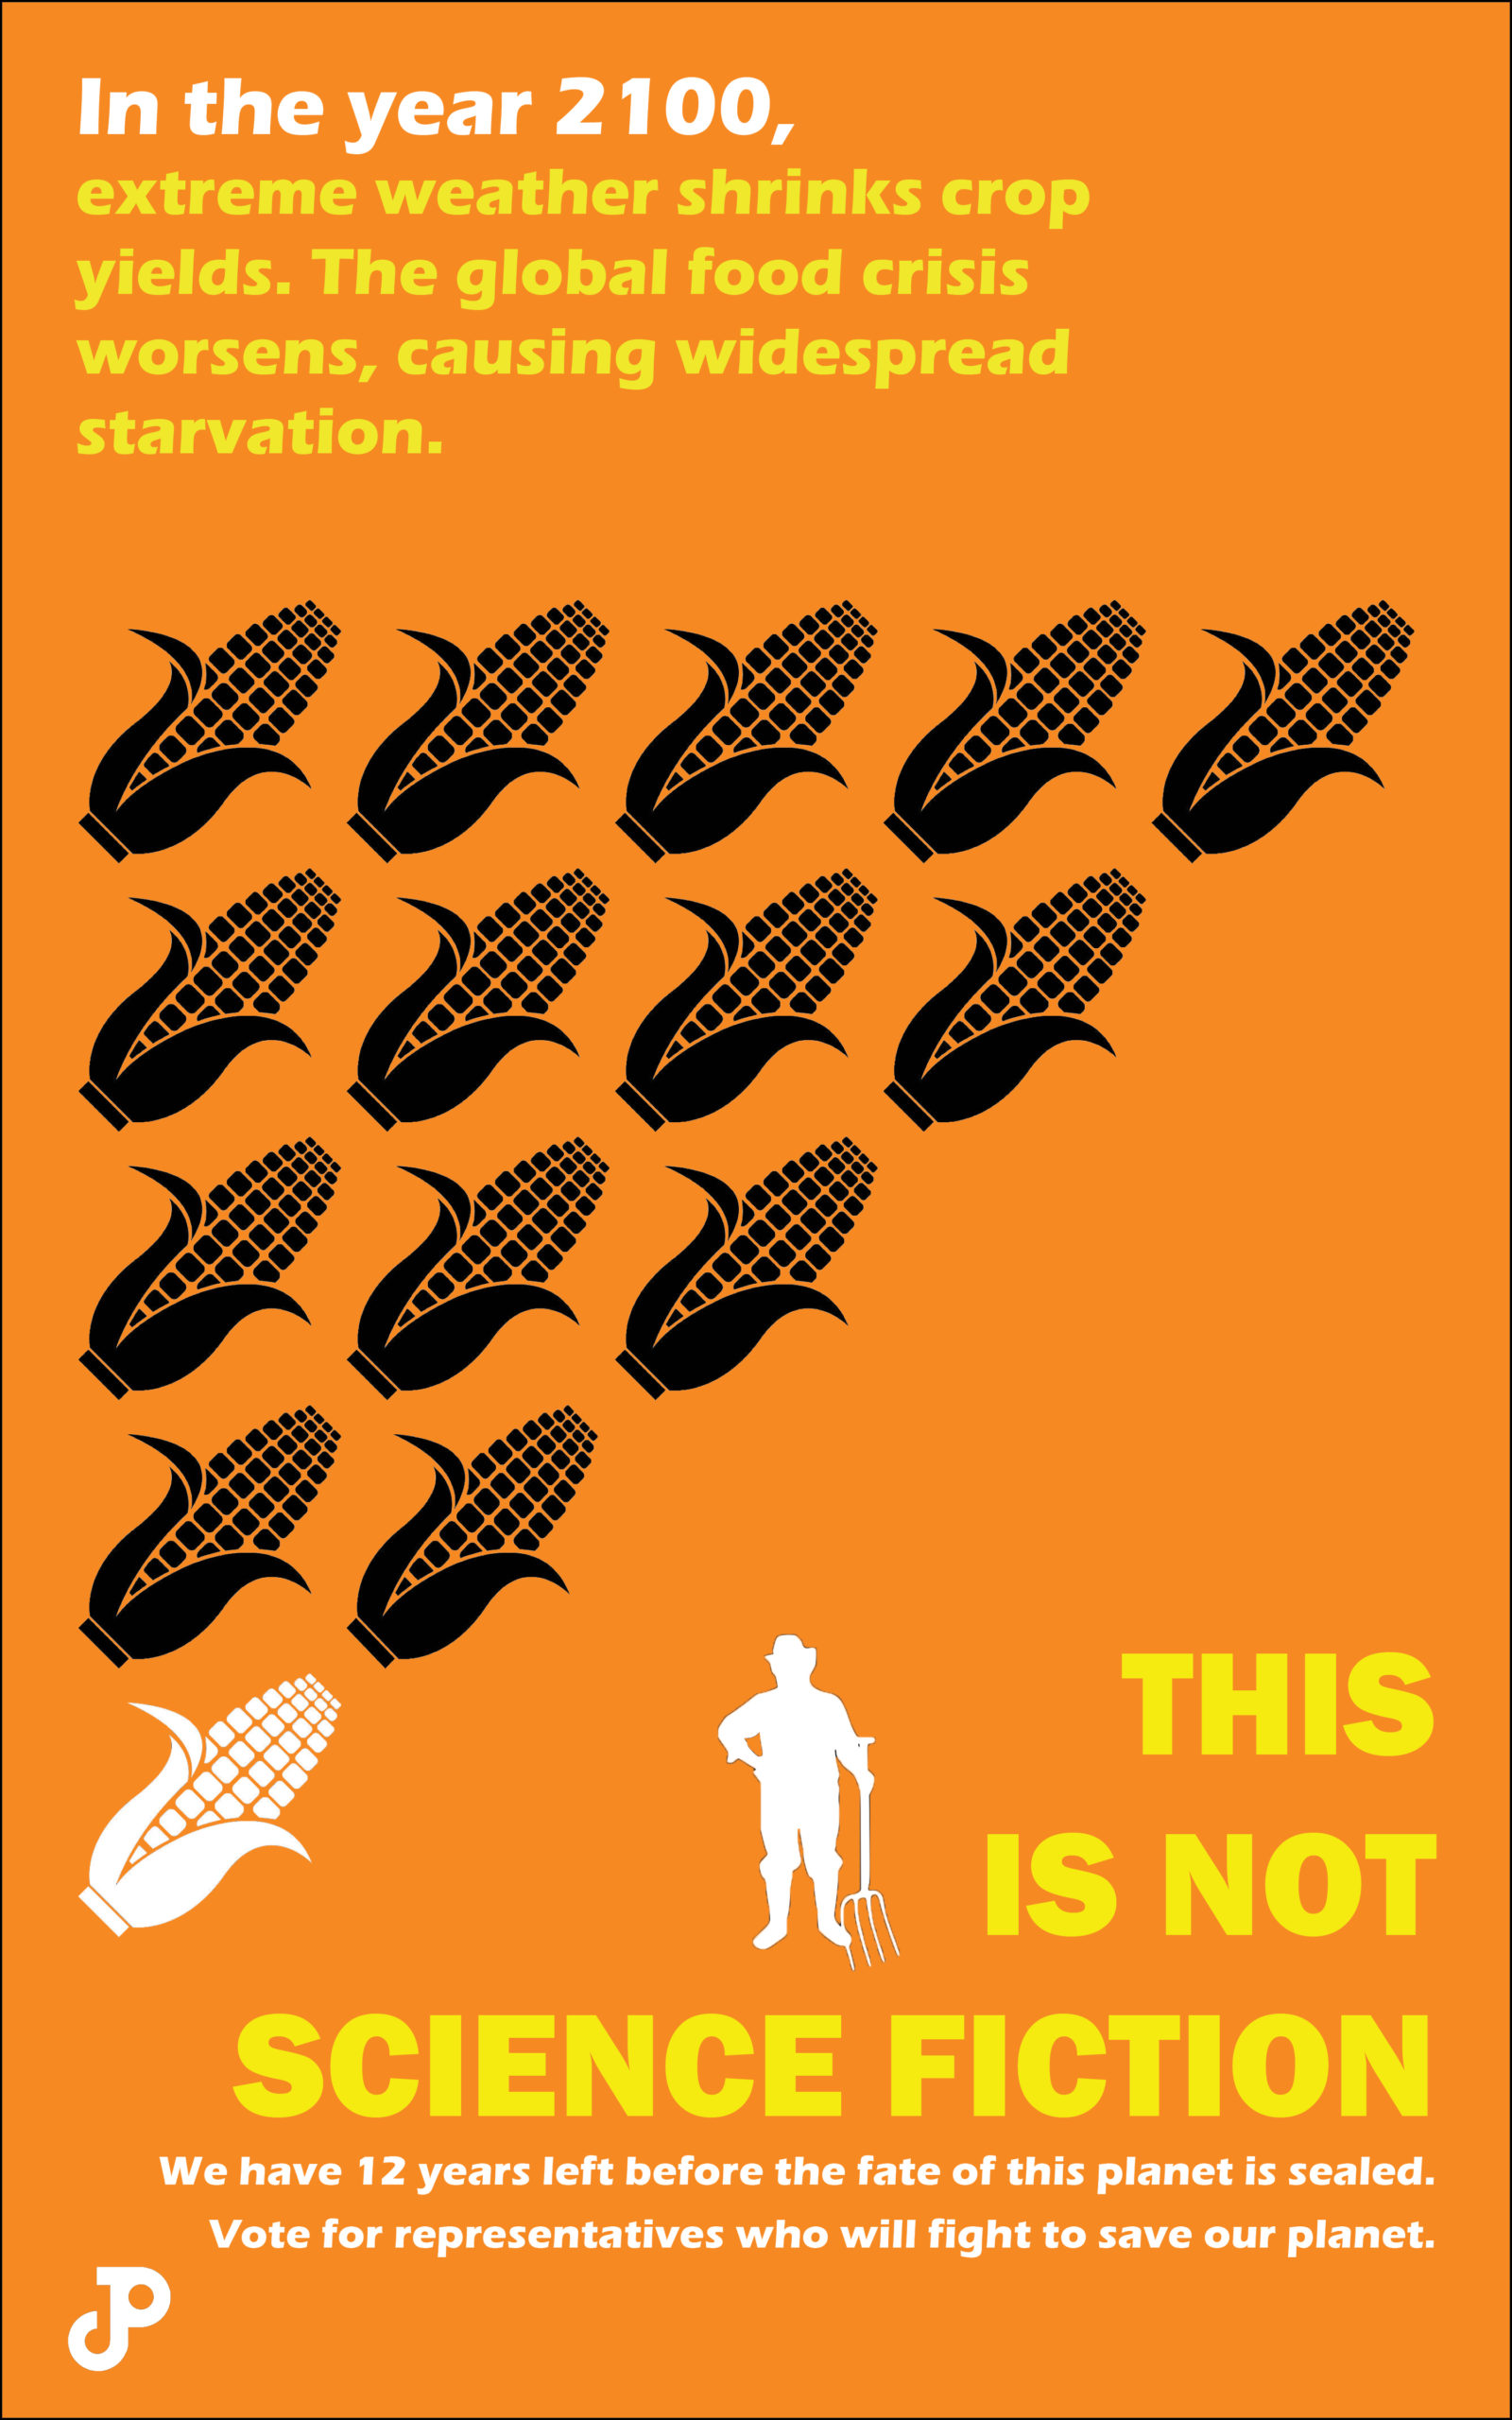 a poster with an illustration of a farmer standing beside fourteen stacked cobs of corn. Only one corn cob is colored white, the rest are colored black. The text reads, in the year 2100, extreme weather shrinks crop yields. The global food crisis worsens, causing widespread starvation. This is not science fiction. We have 12 years left before the fate of this planet is sealed. Vote for representatives who will fight to save our planet.